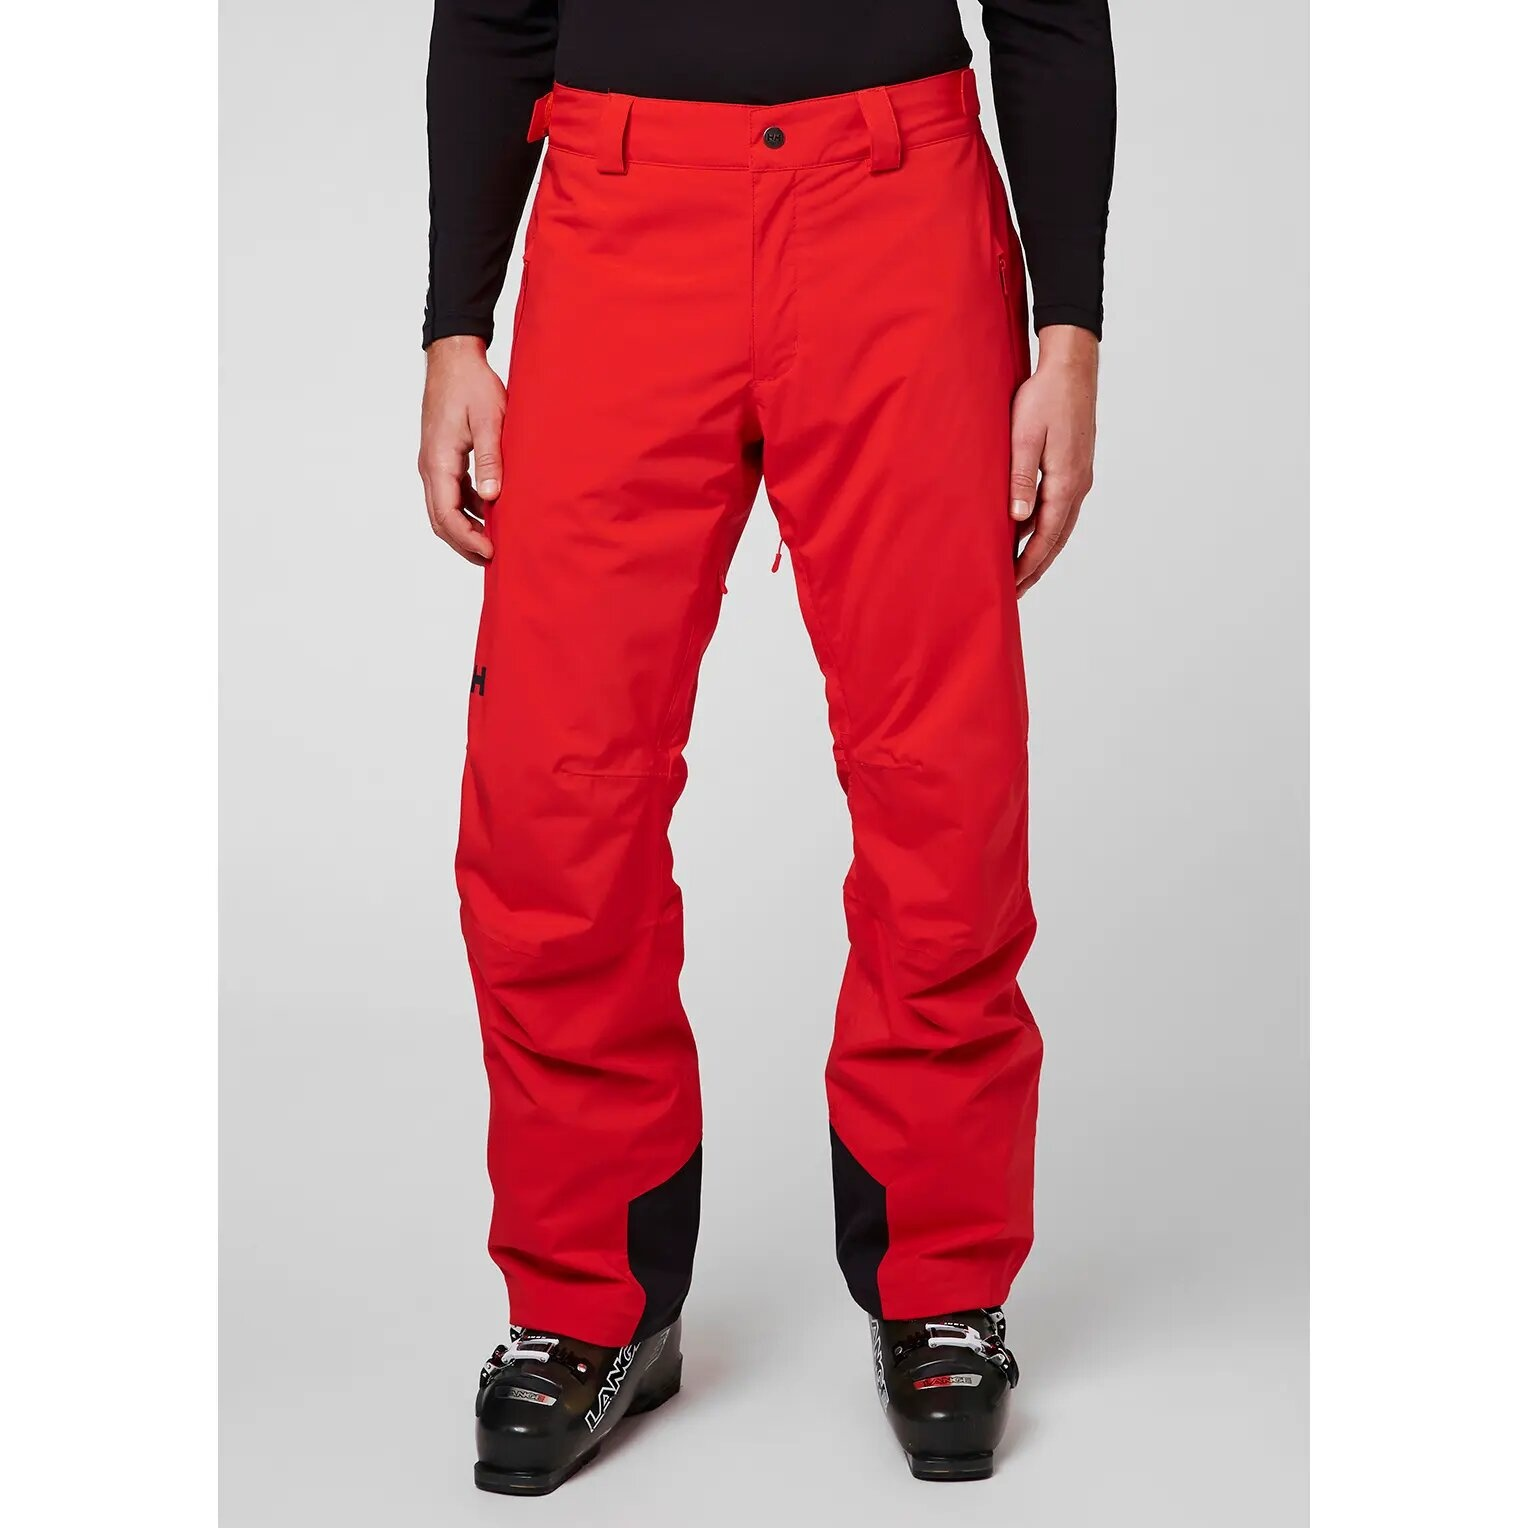 Legendary Insulated Pant, Alert Red